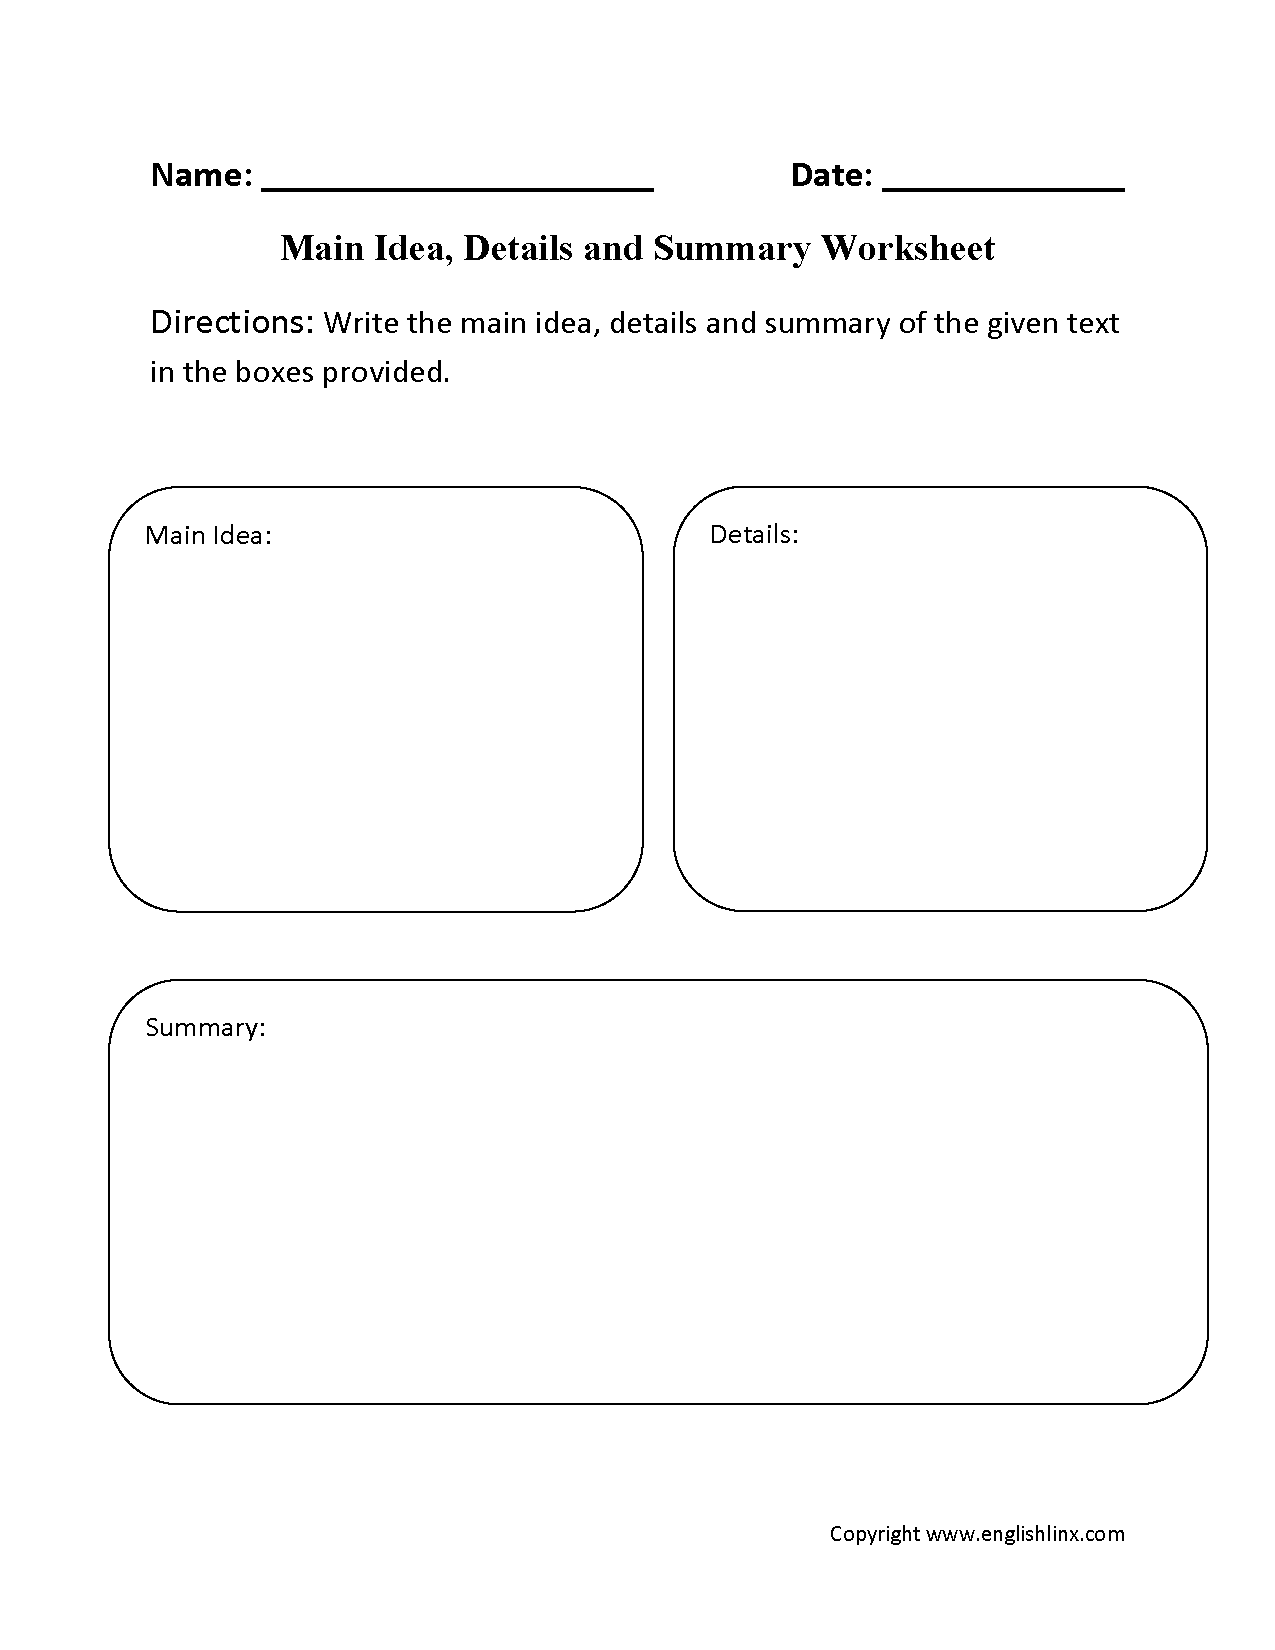 worksheet Summary Worksheet main idea worksheets details and summary worksheet worksheet